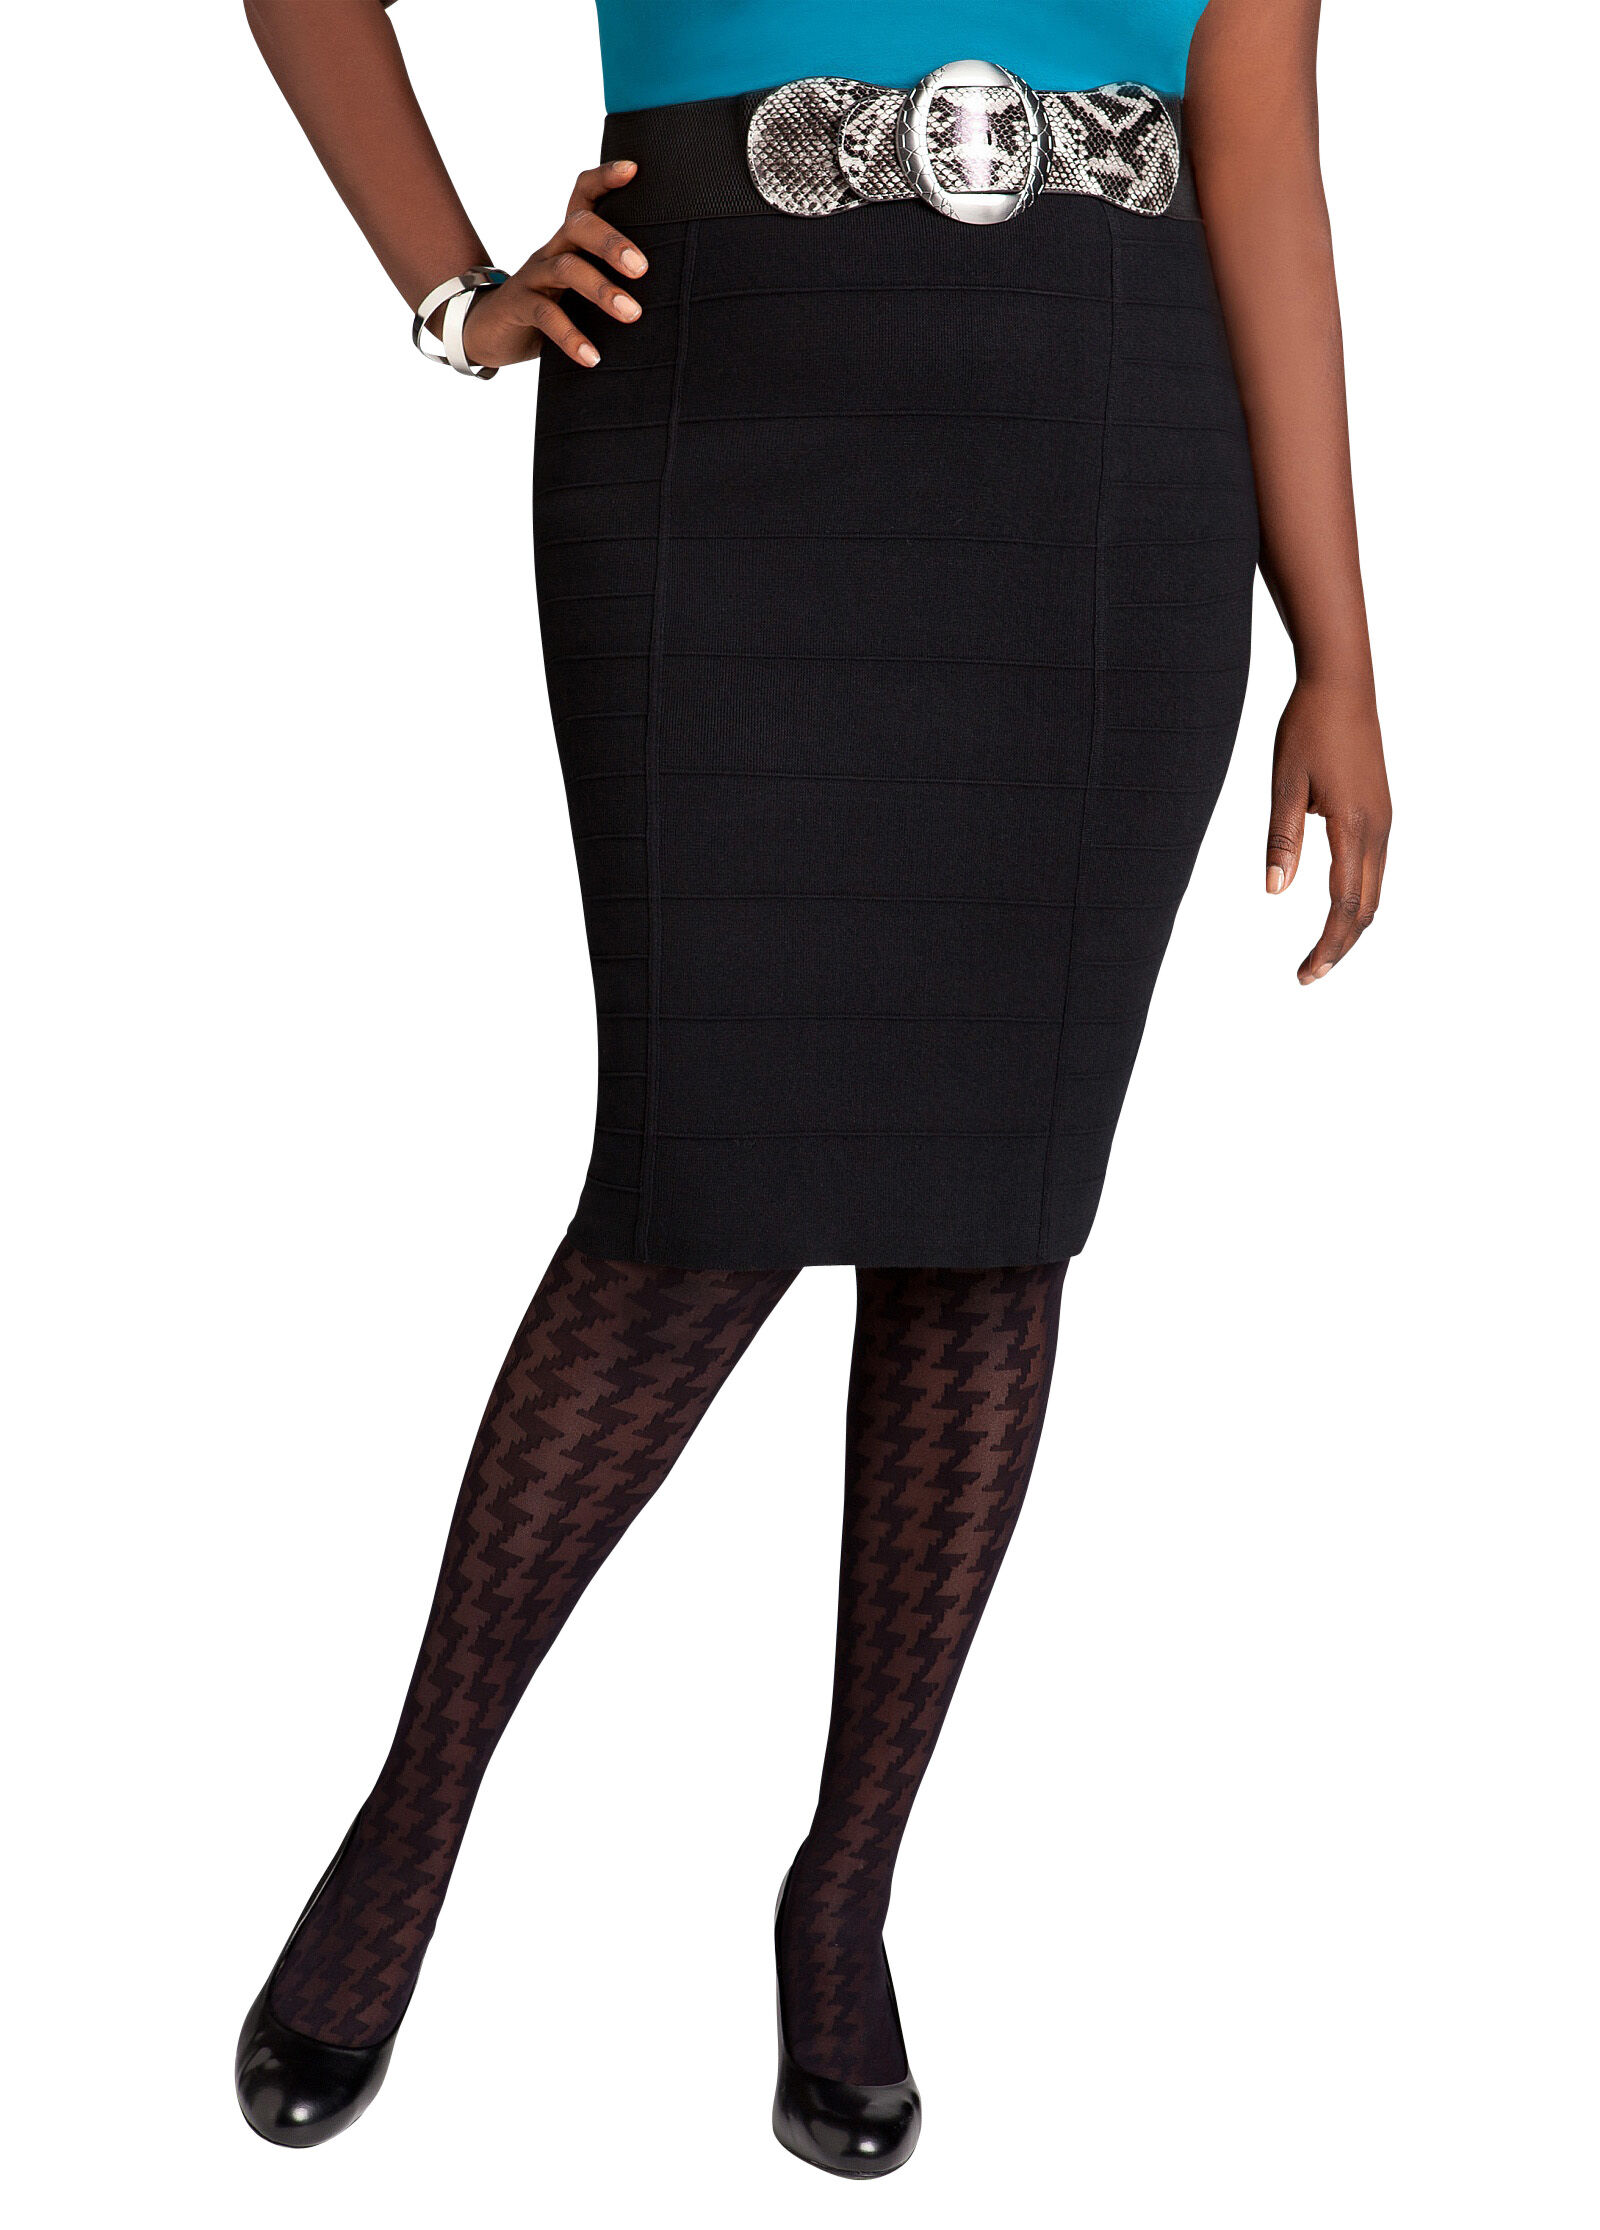 Banded Bodycon Skirt